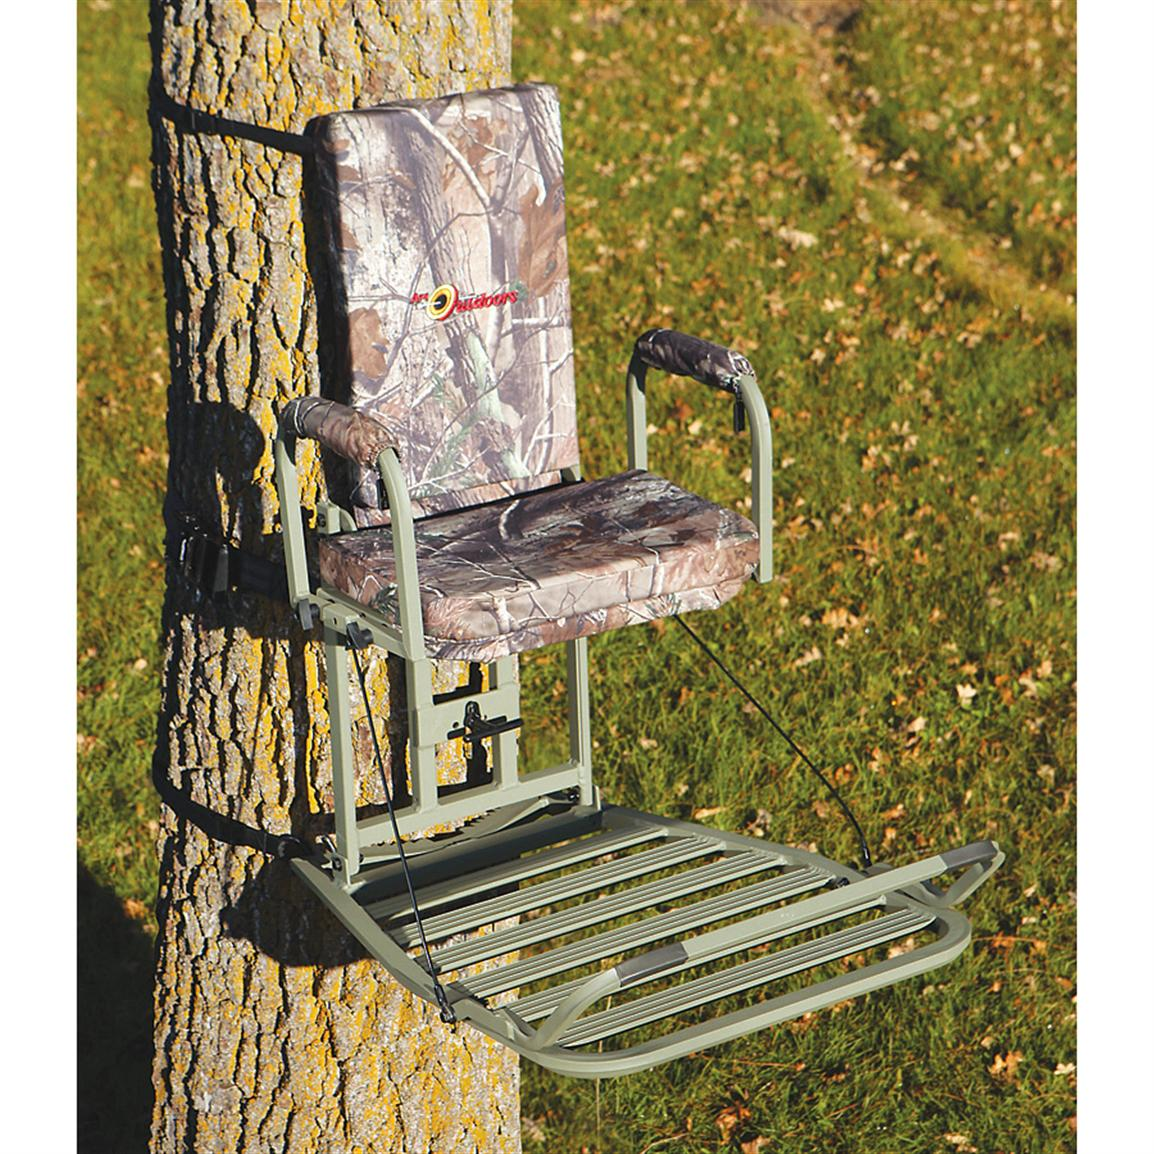 API® Deluxe Baby Grand Hang-on Tree Stand, Realtree® AP